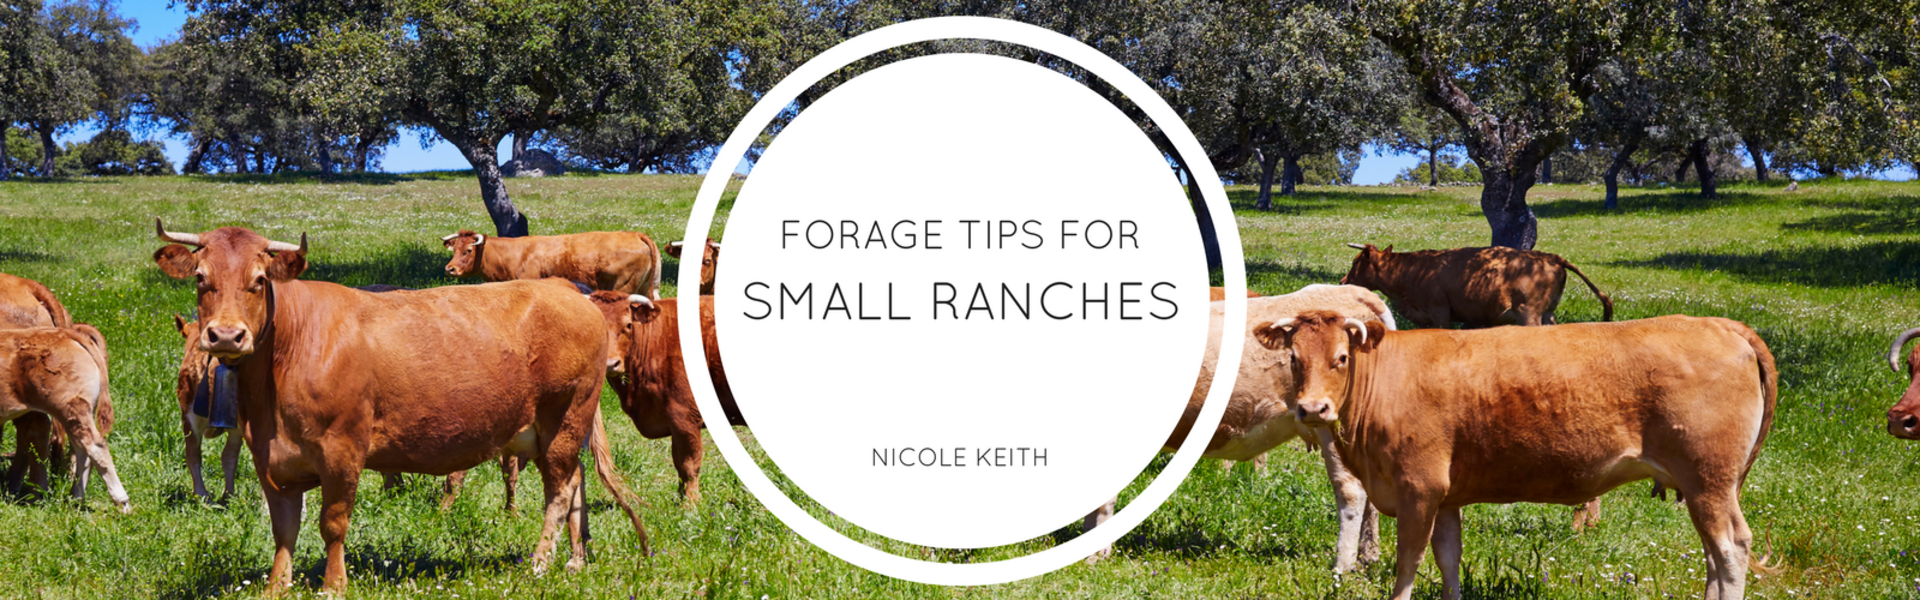 Tips for Small Ranches